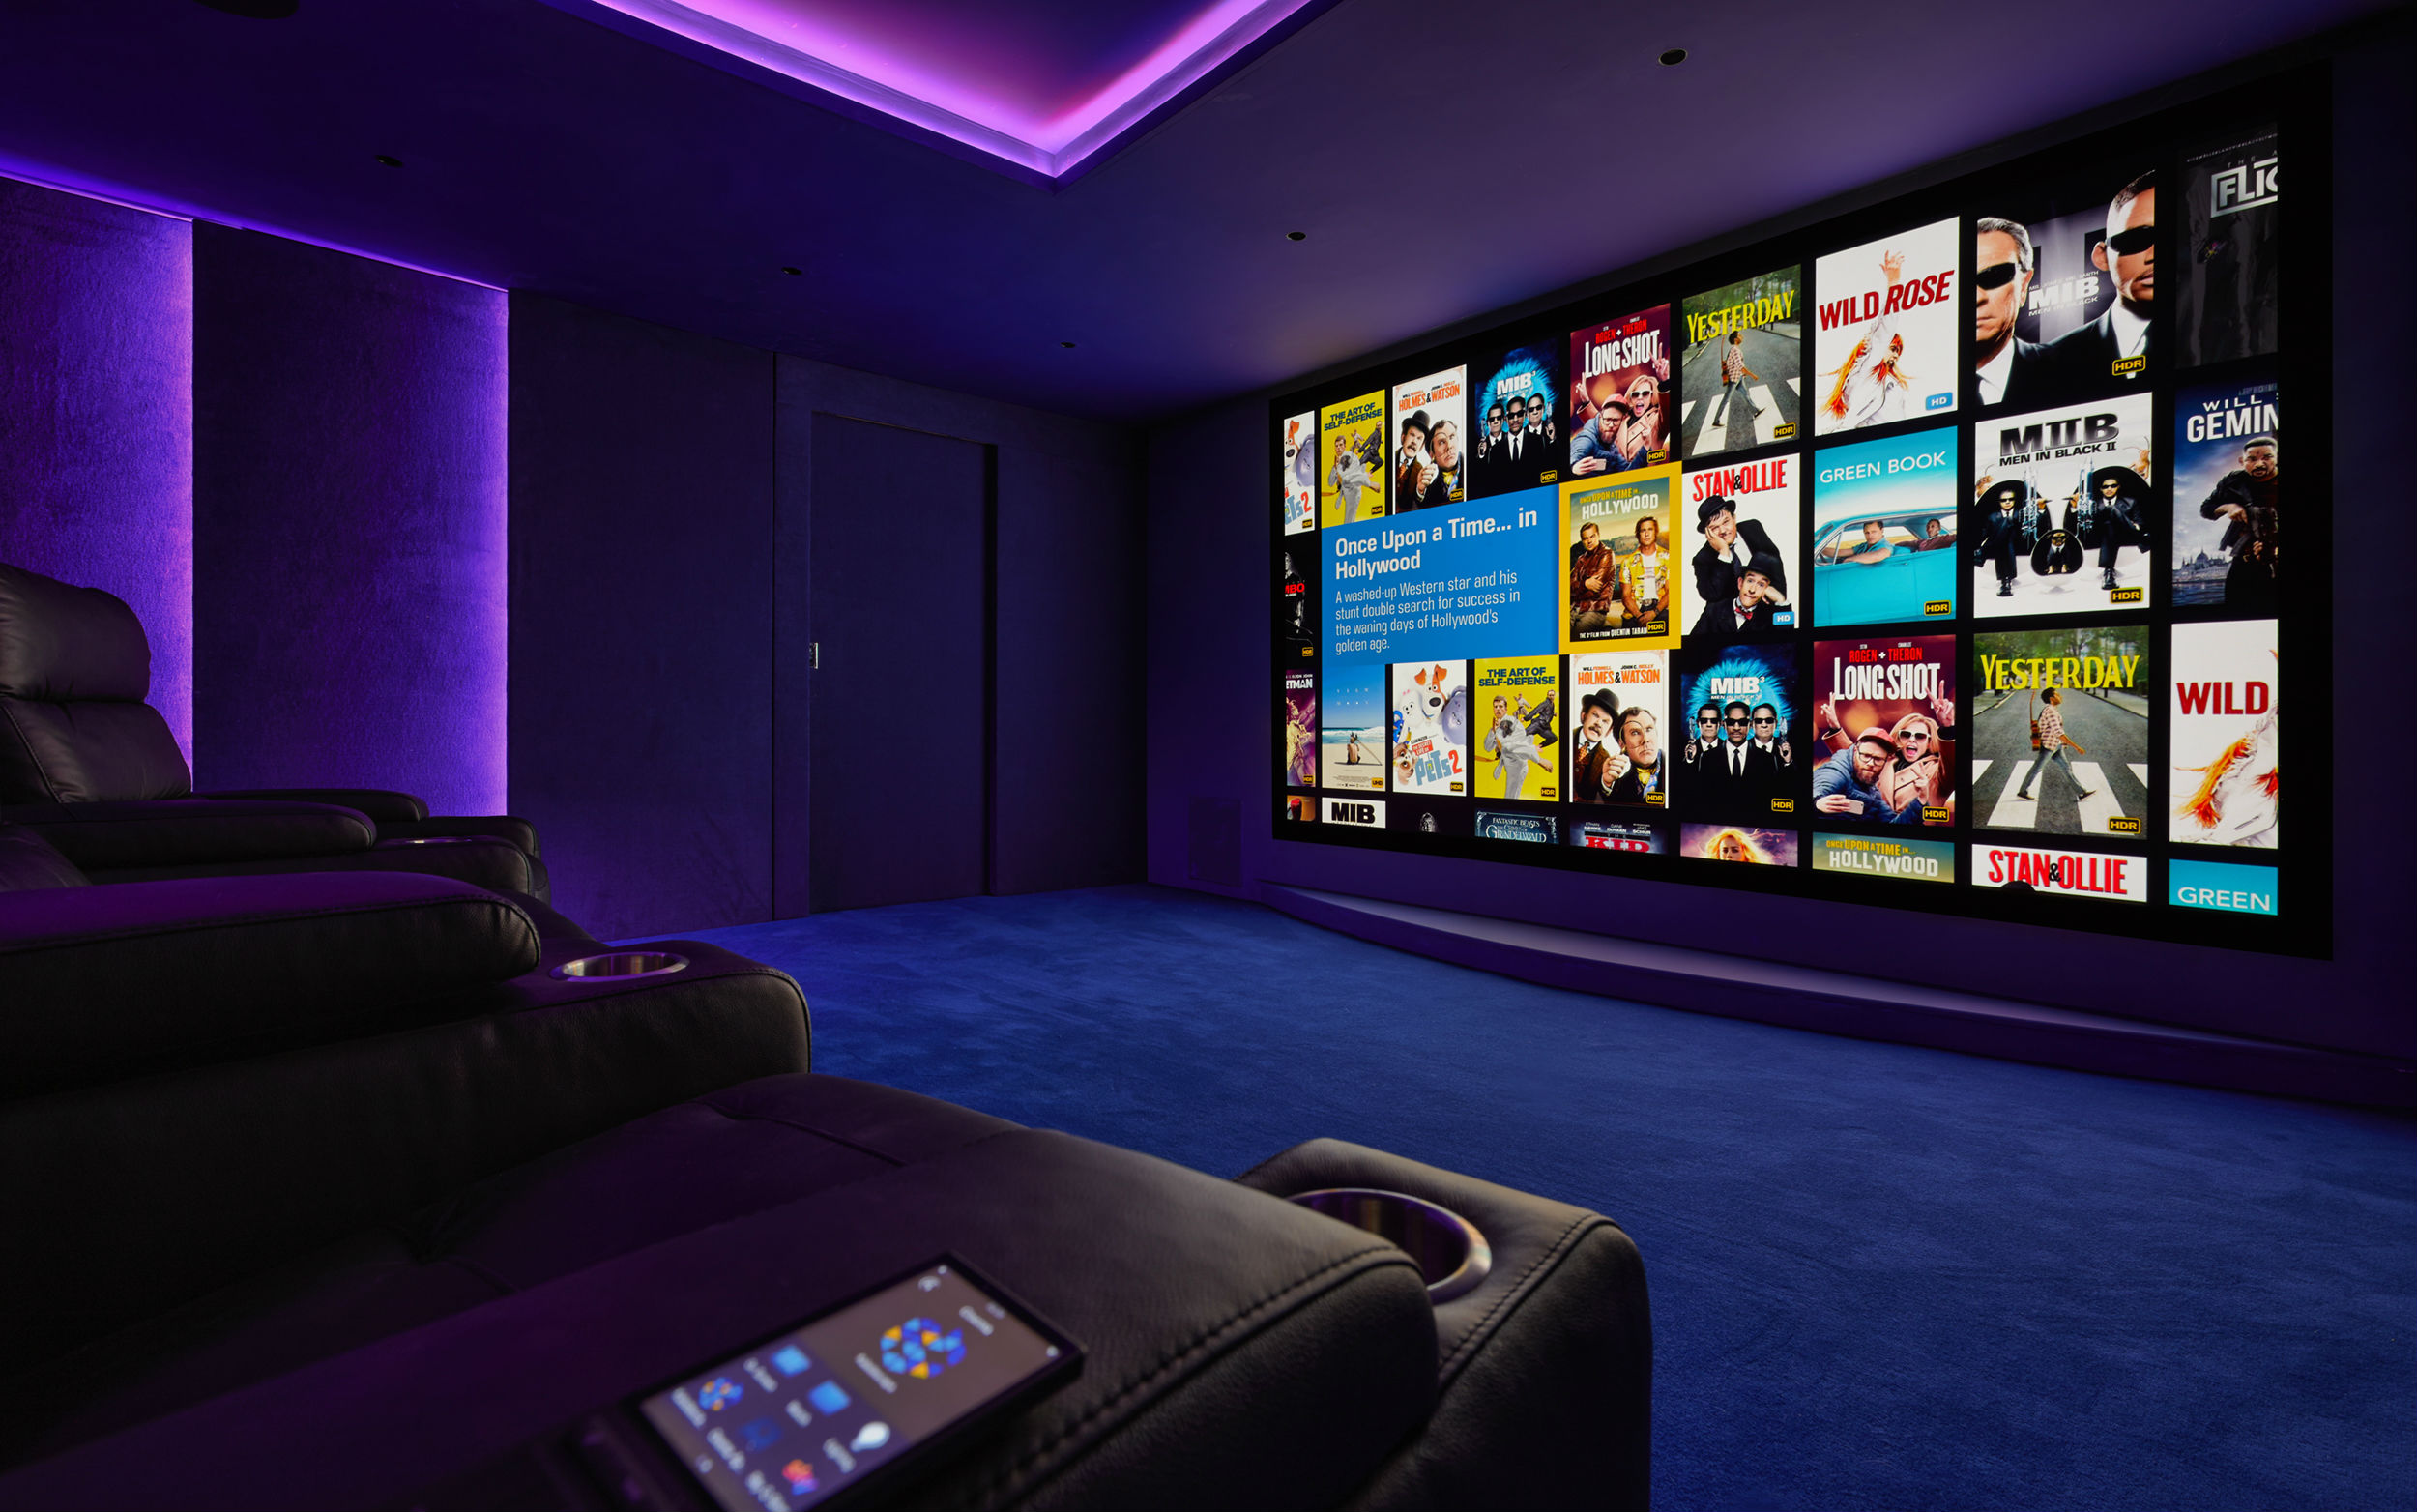 Smart home entertainment - home cinema with automated lighting